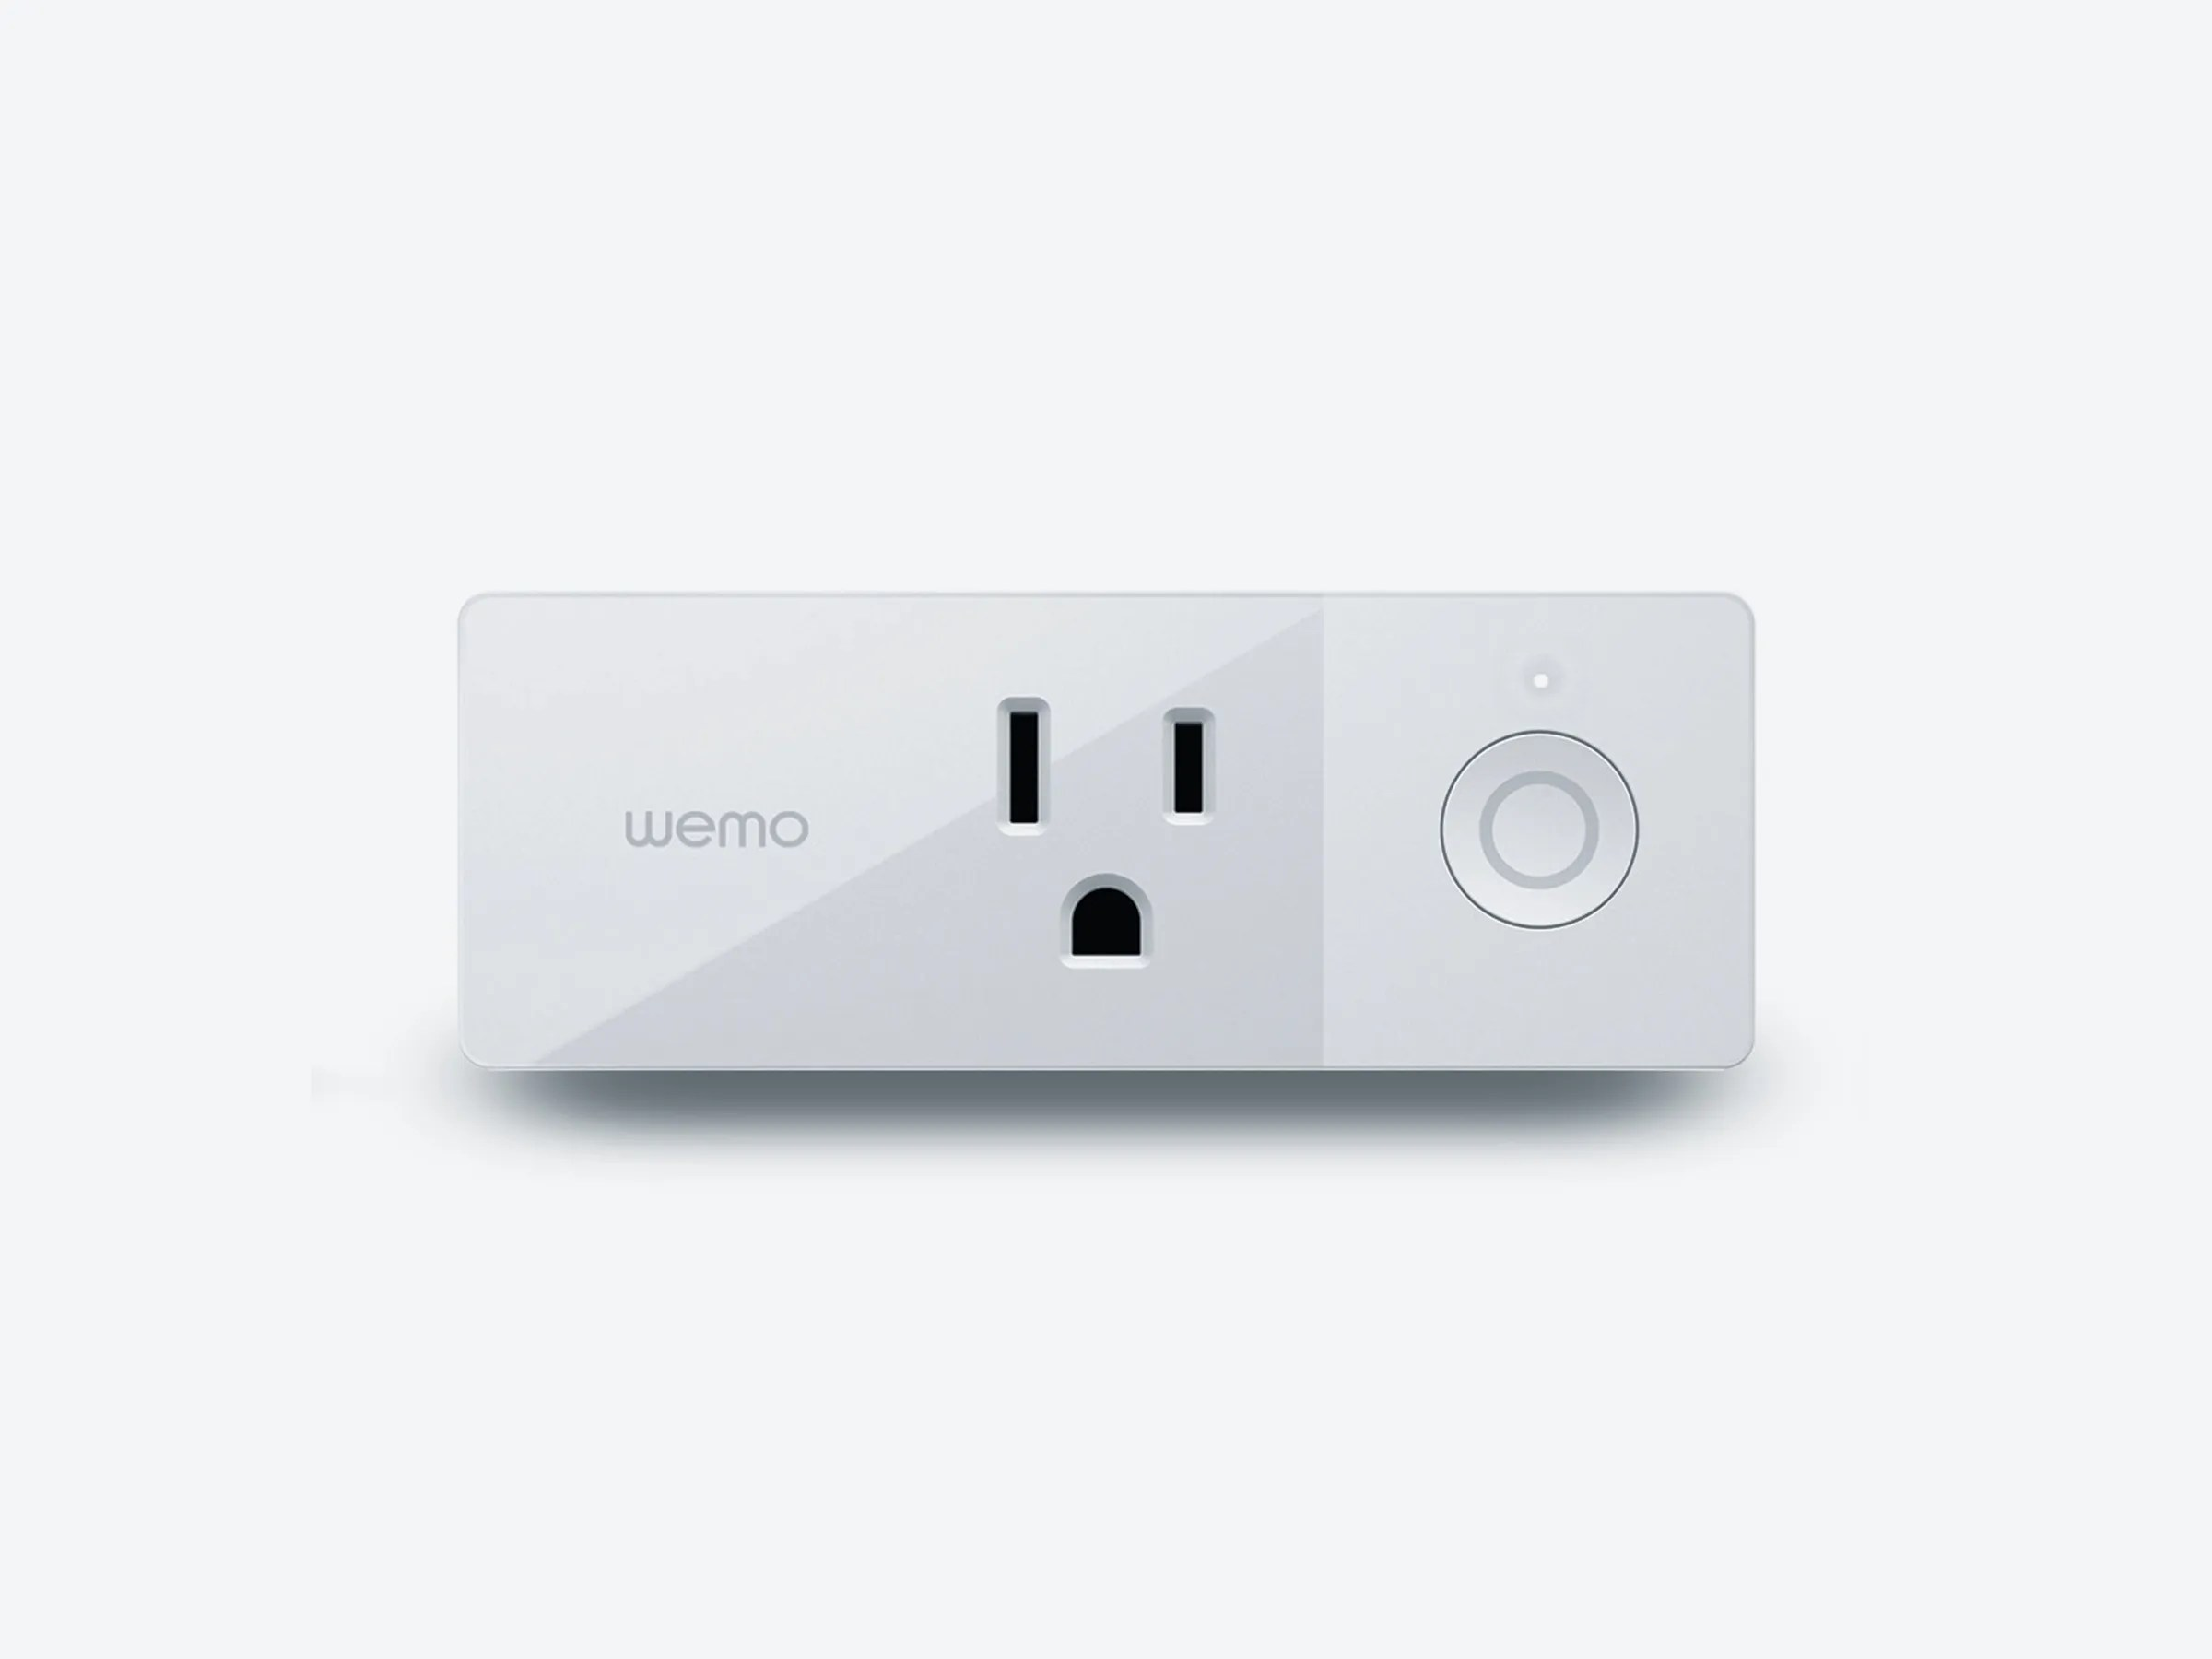 Product Smart Belkin Wemo Mini Smart Plug Review Fun But Not Essential